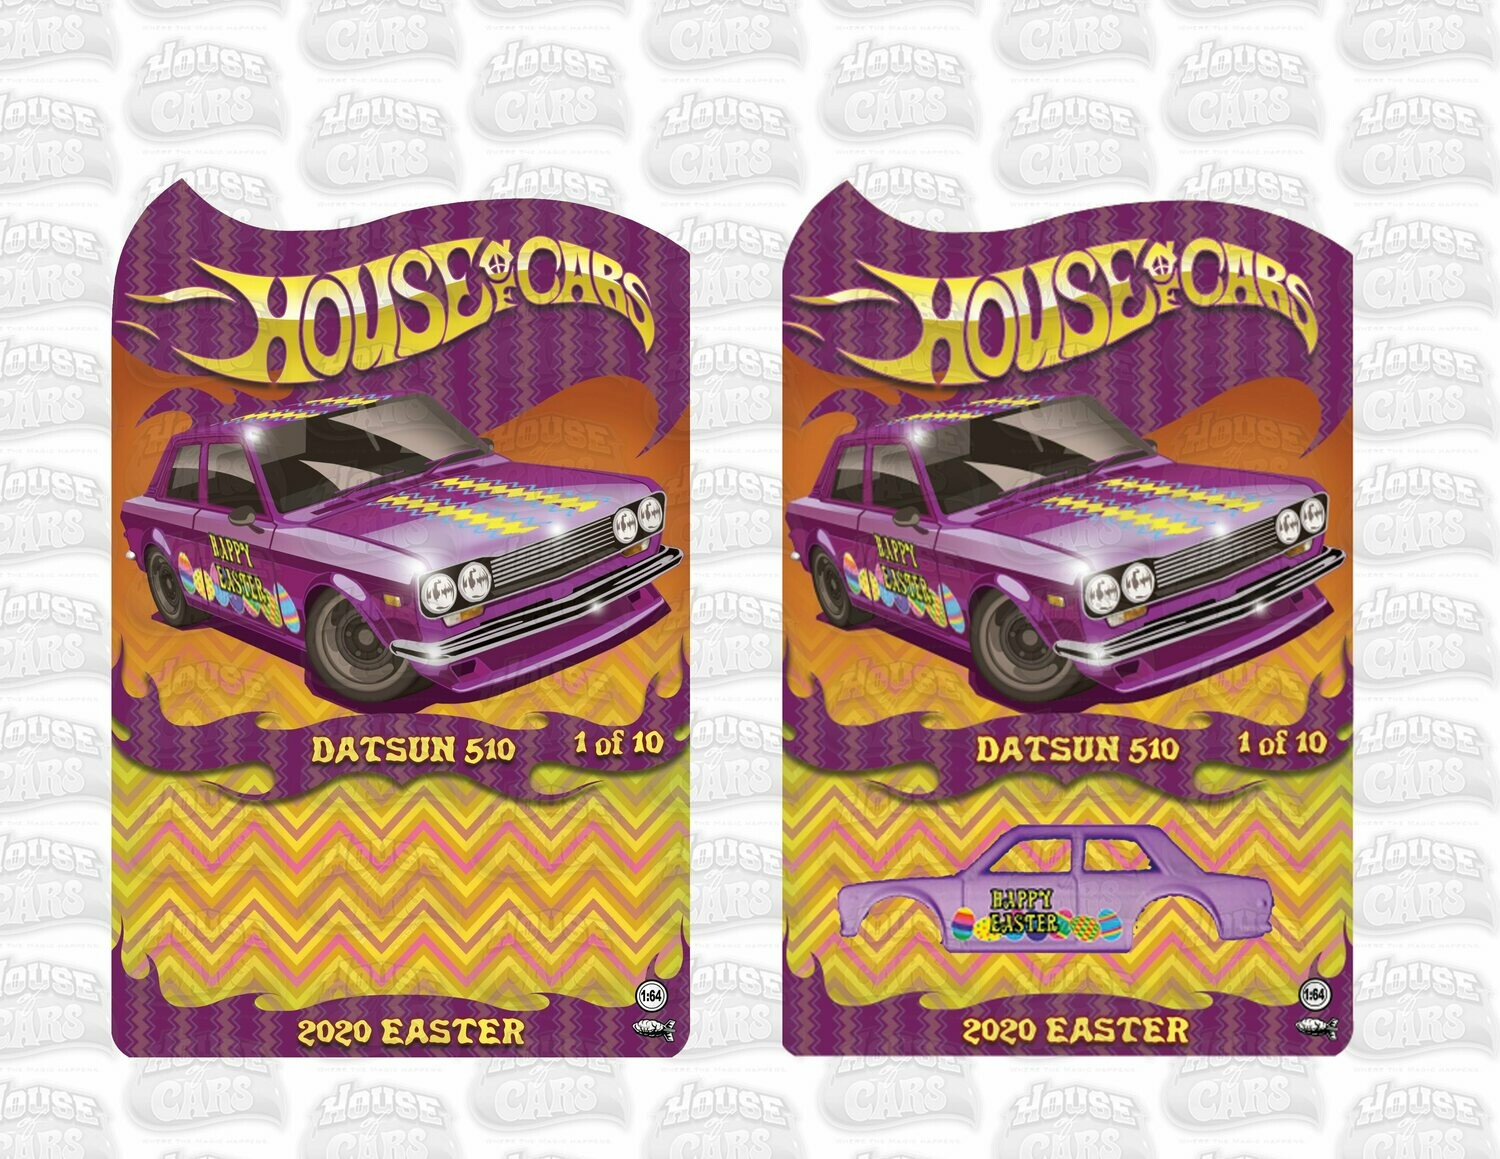 2020 April Easter Series Datsun 510 1 of 10 Produced